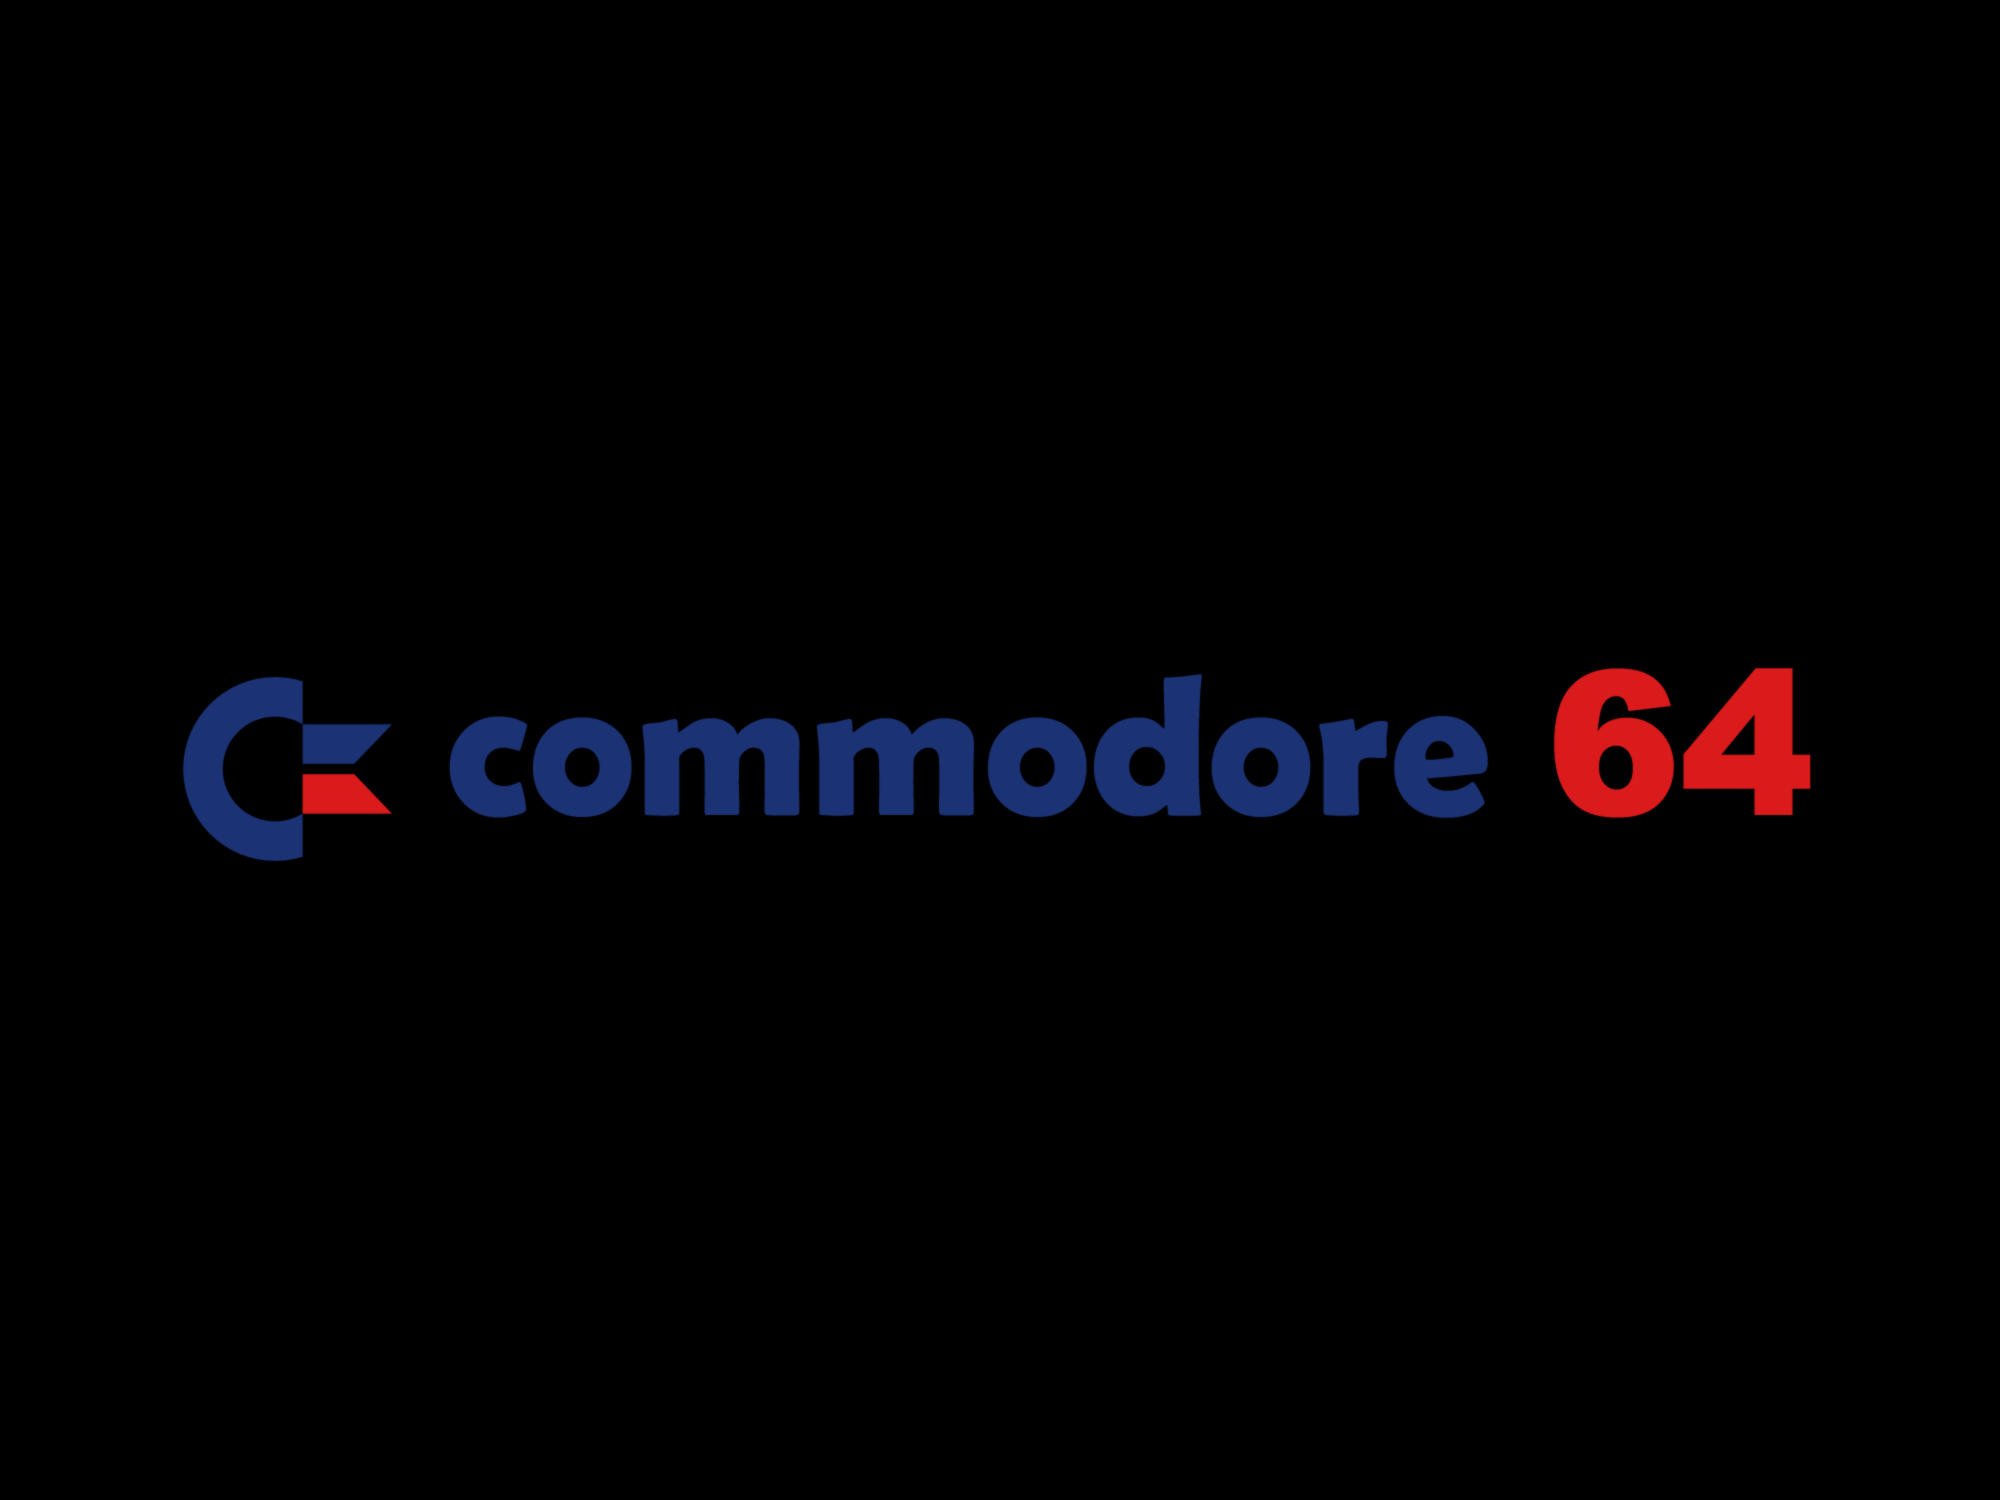 commodore 64 logo by icmerch on deviantart